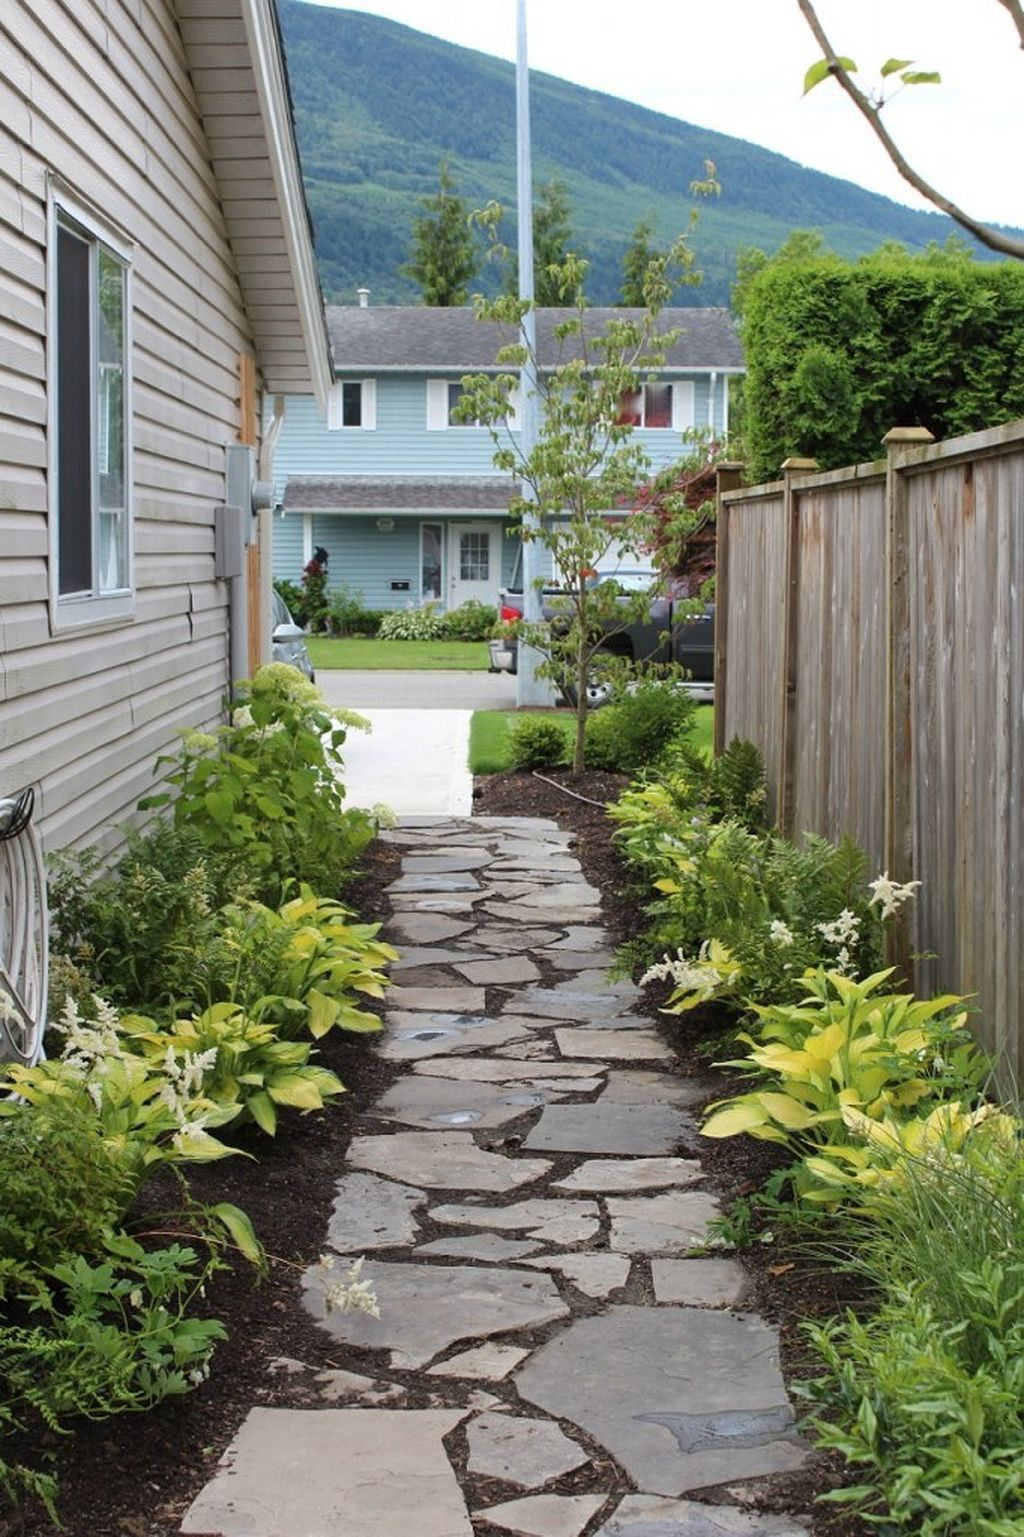 Pin by Garden Magz on Flowers and Plants | Backyard ... on Side Yard Walkway Ideas  id=36012